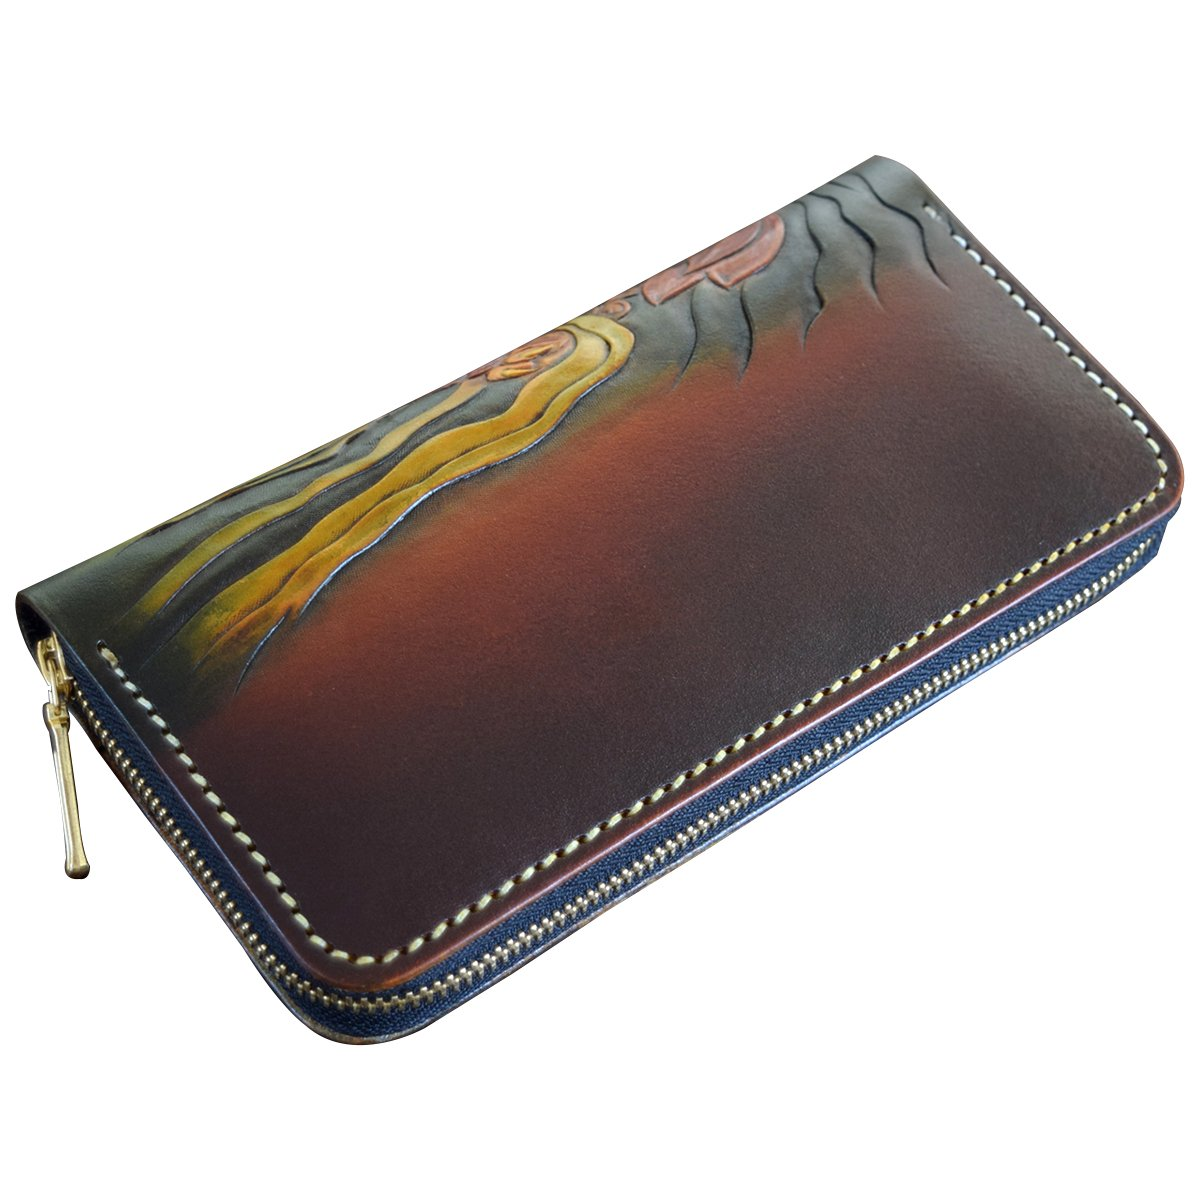 OLG.YAT Vegetable tanned leather Retro Genuine Leather Mens Wallets 20JCPD